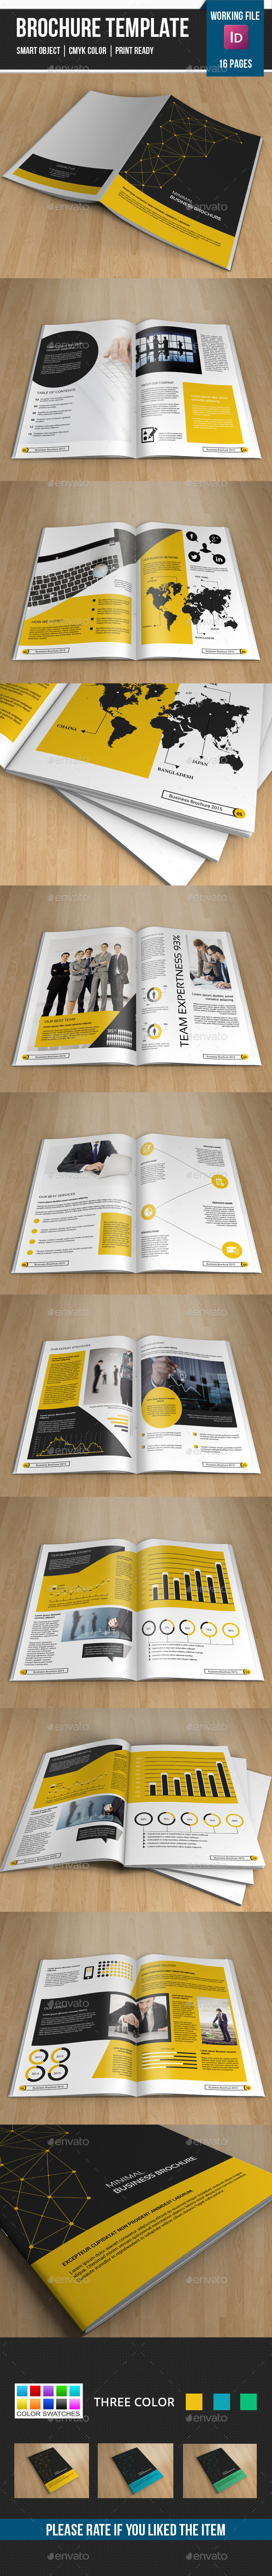 GraphicRiver Corporate Brochure Template-V243 11322352